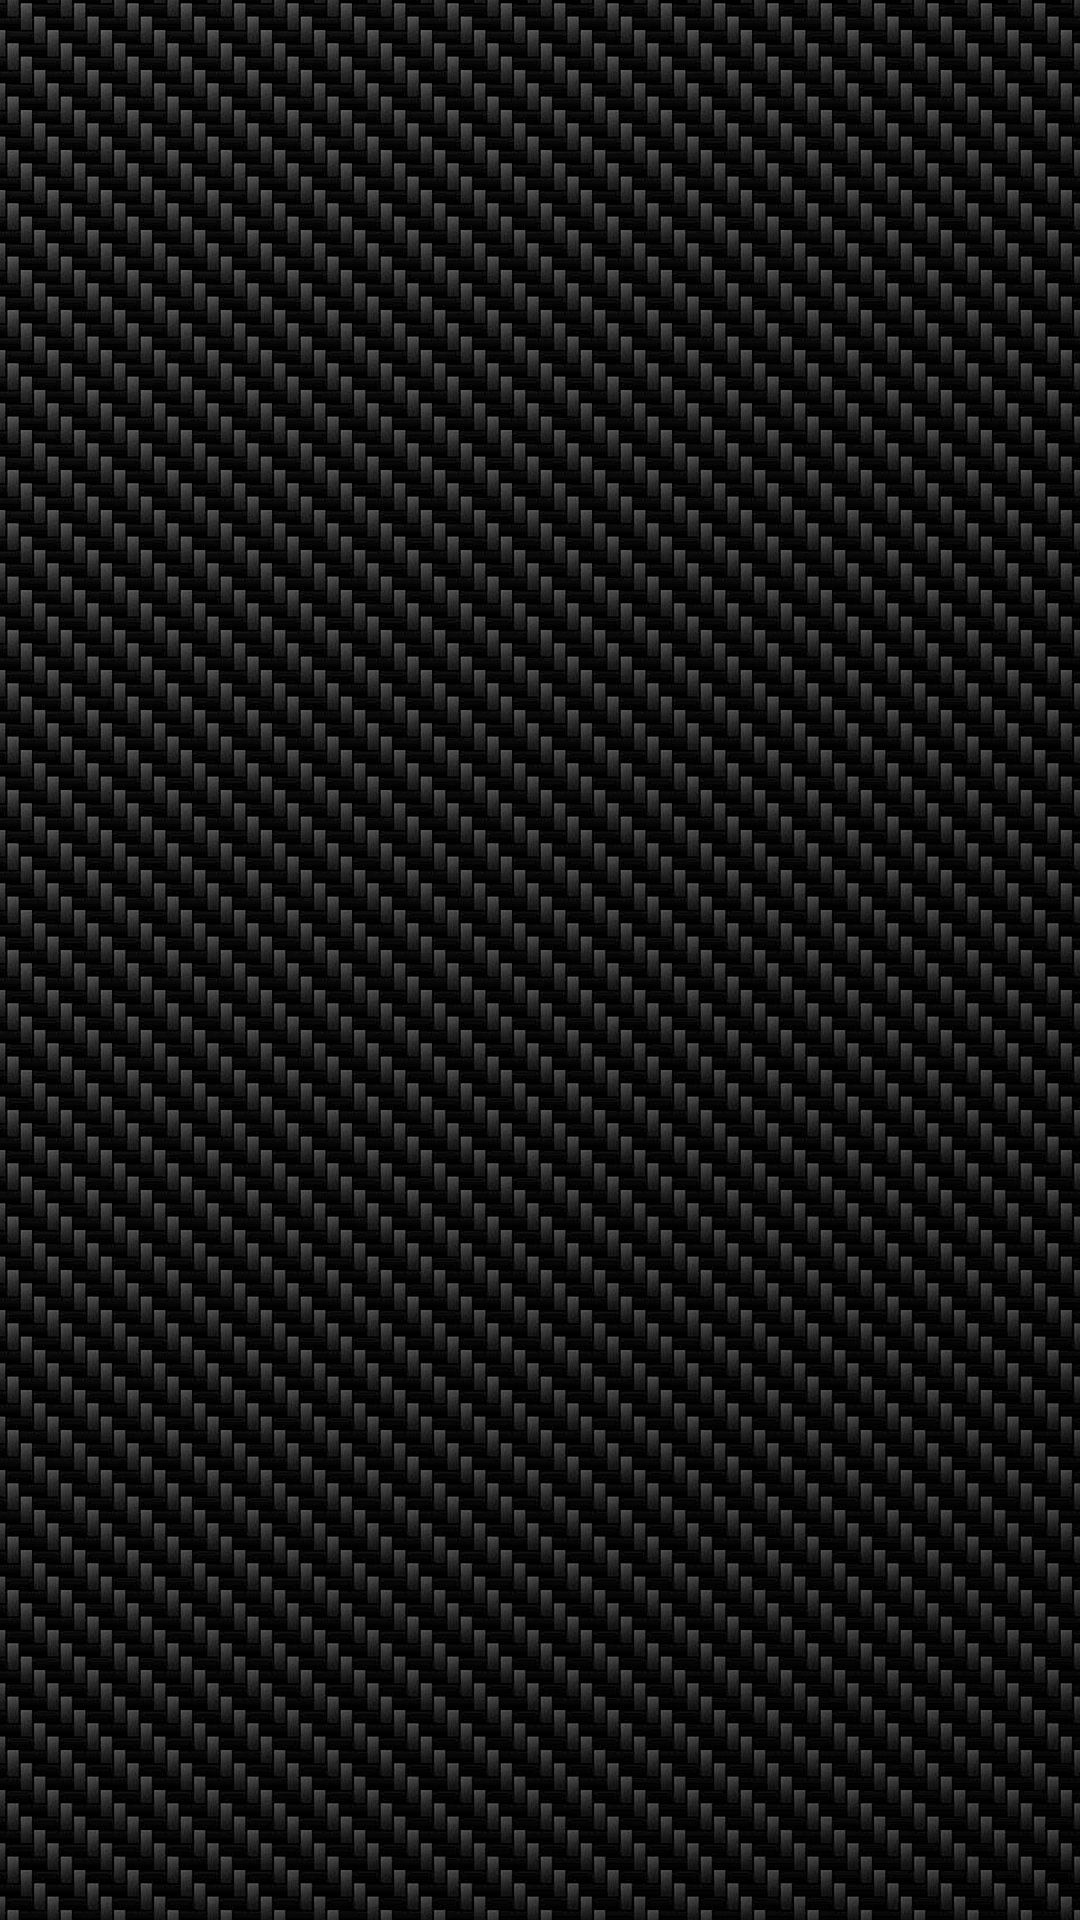 Abstract Carbon Fiber iPhone 6 Plus Wallpaper | iPhone Wallpaper